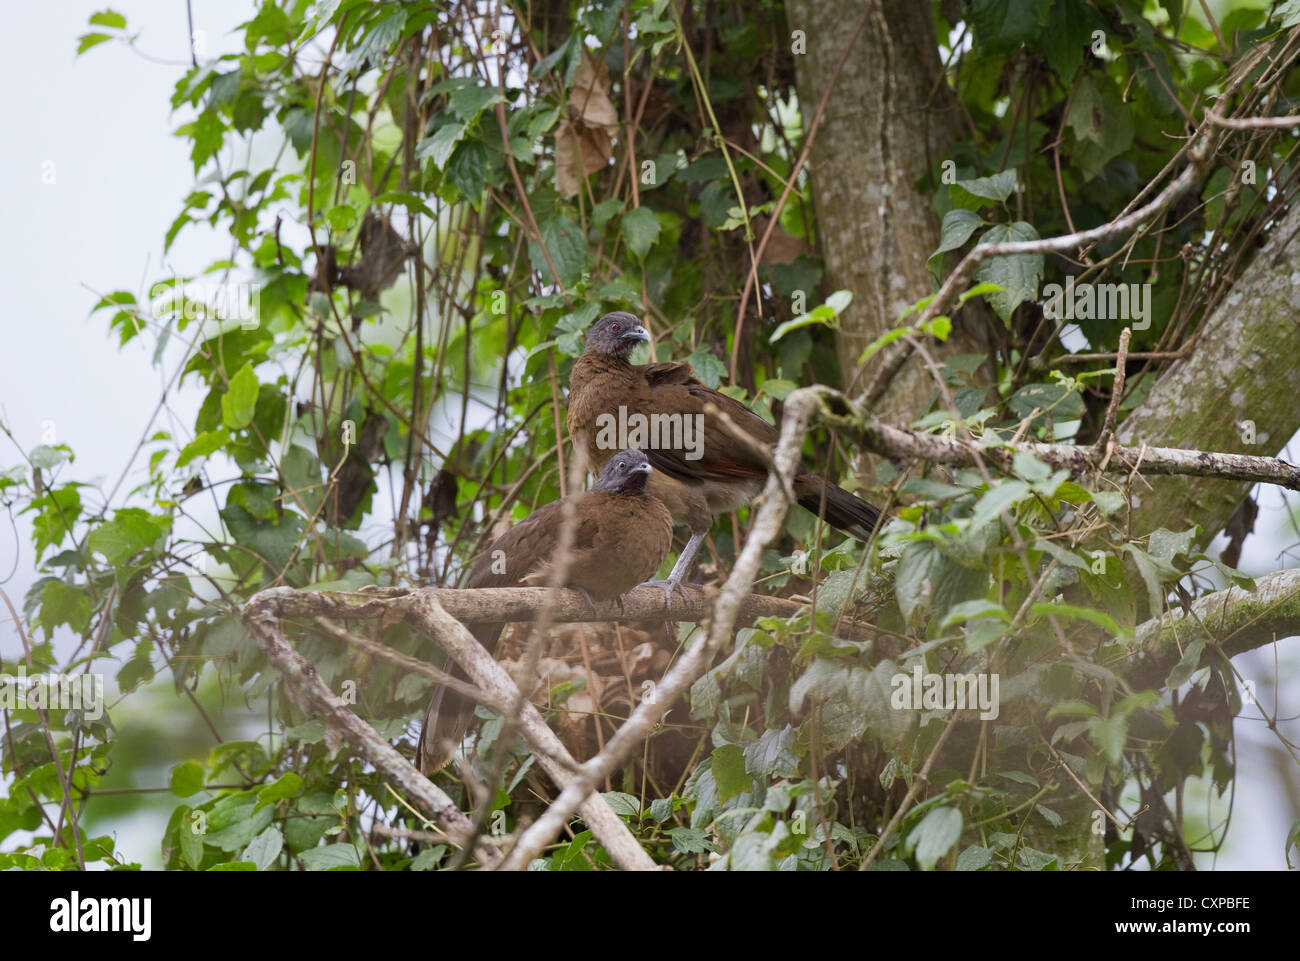 Gray-headed Chachalaca (Ortalis cinereiceps) in tree at Rancho Naturalista near Turrialba, Costa Rica, Central America. - Stock Image